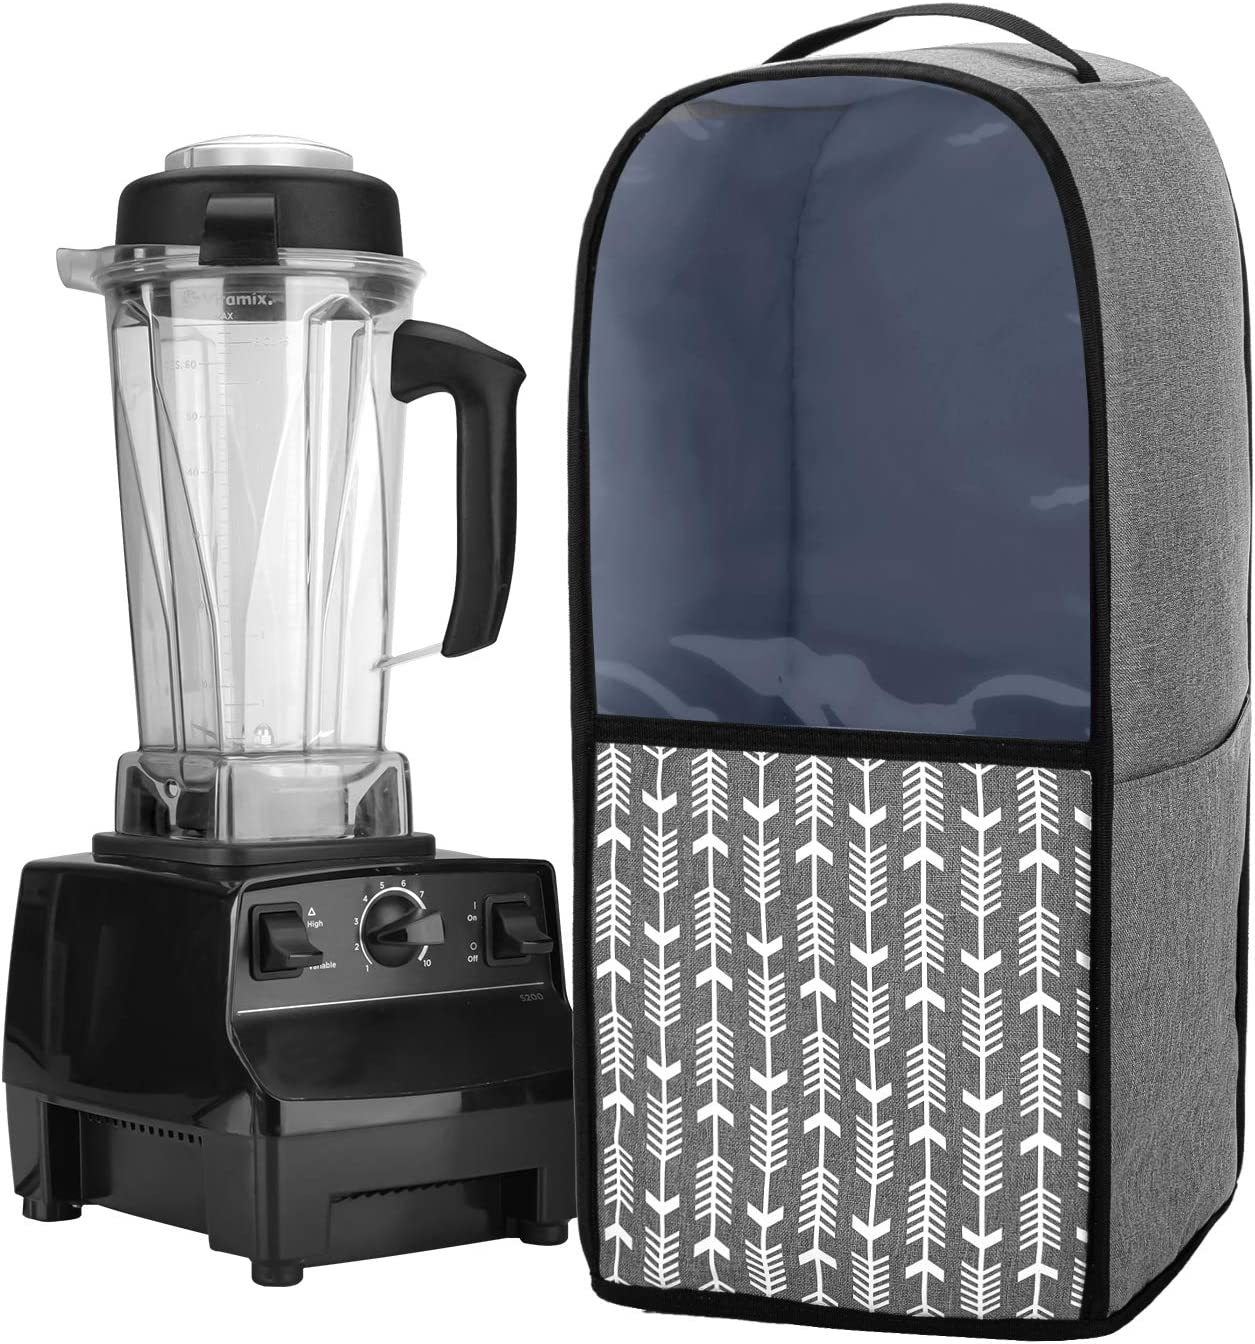 Yarwo Visible Blender Dust Cover with Pockets and Top Handle, Compatible with Vitamix Blender Classic C-Series 5200, 6300, PRO 500, Gray with Arrow (COVER ONLY)